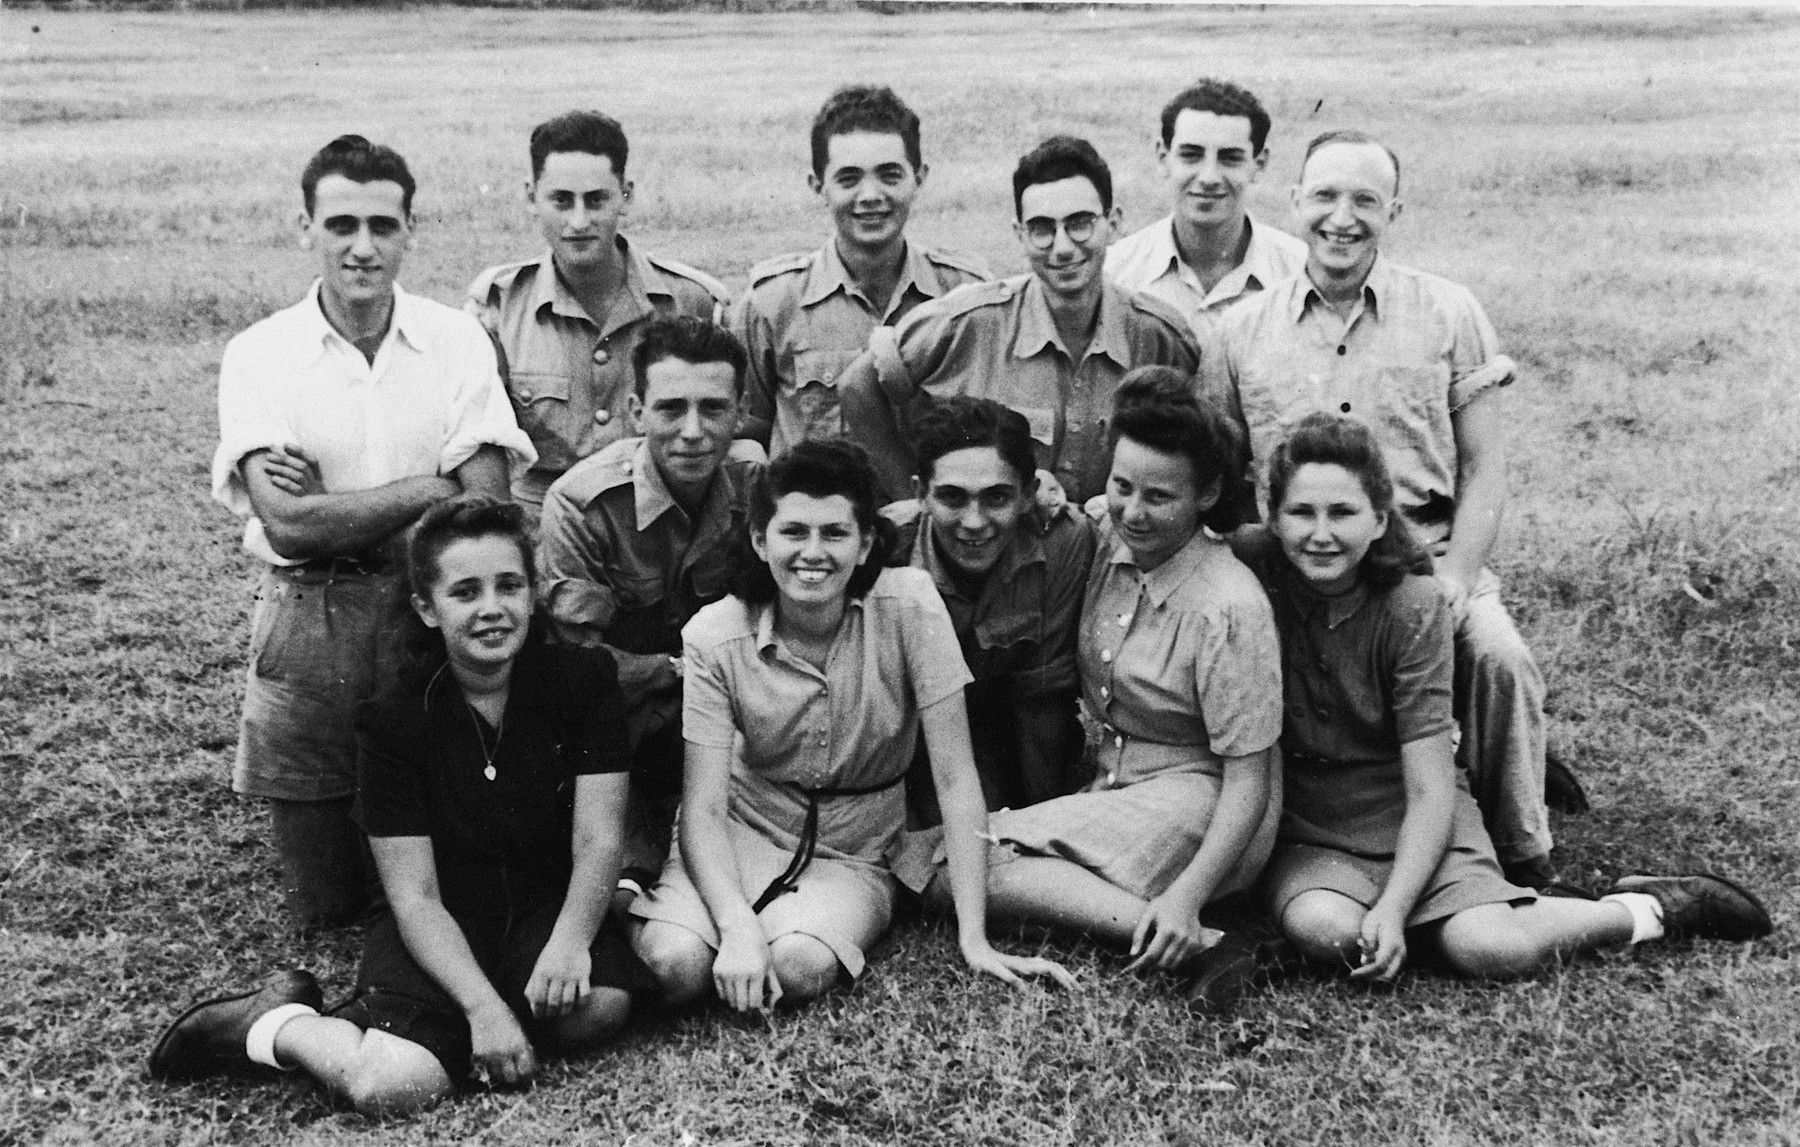 Jewish young people interned on the island of Mauritius.  Heinrich Wellisch is pictured in the second row, third from the right.